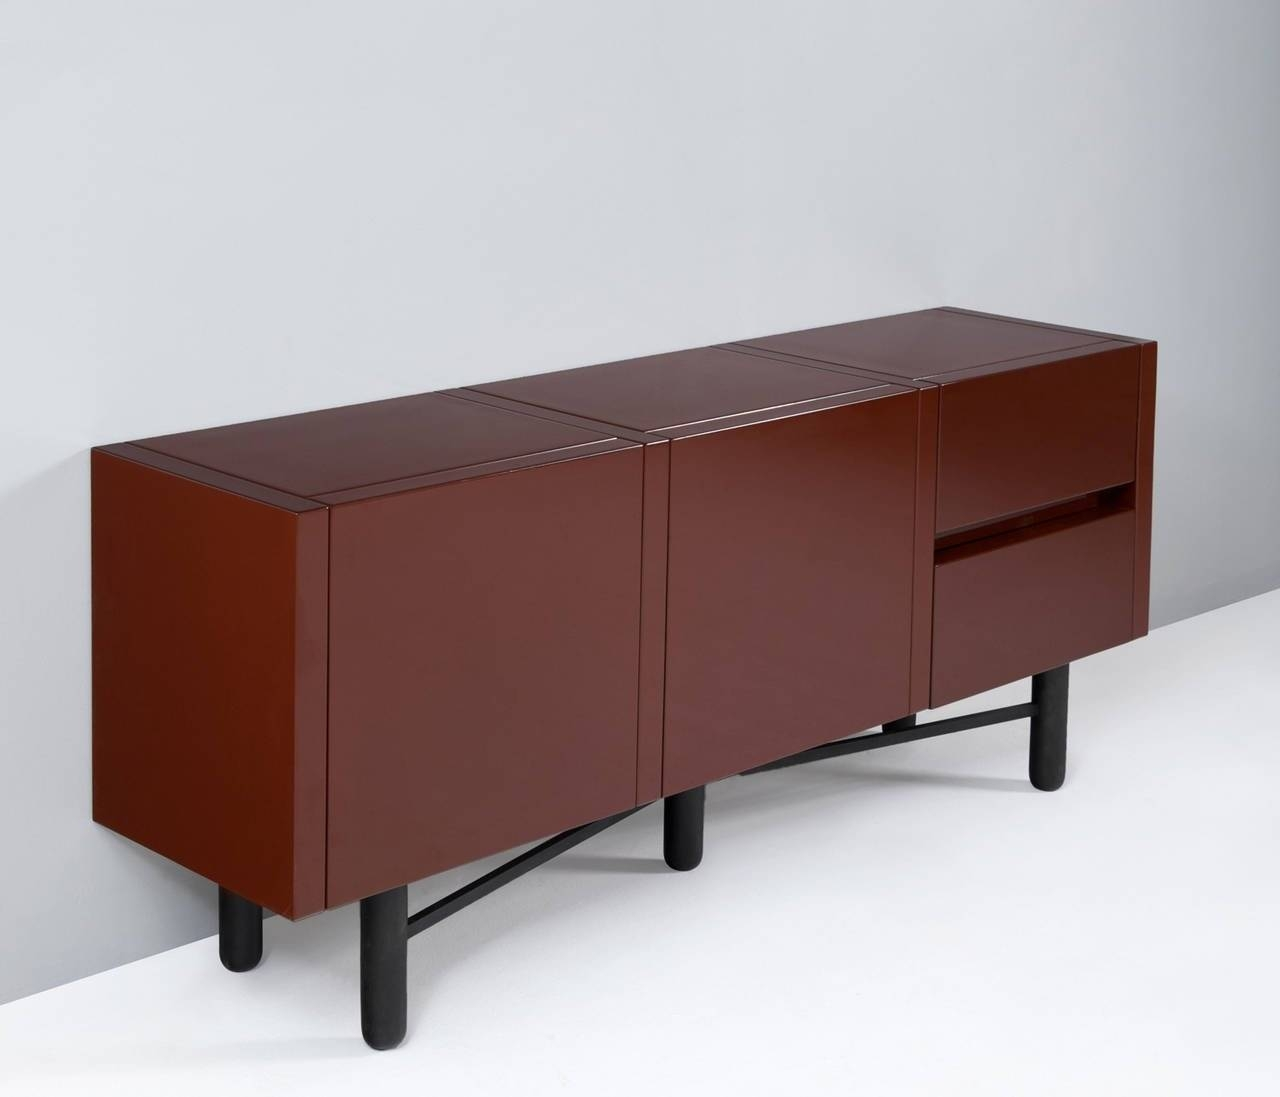 Roche Bobois Red Lacquered High Gloss Sideboard For Sale At 1stdibs Throughout Red High Gloss Sideboard (View 2 of 20)